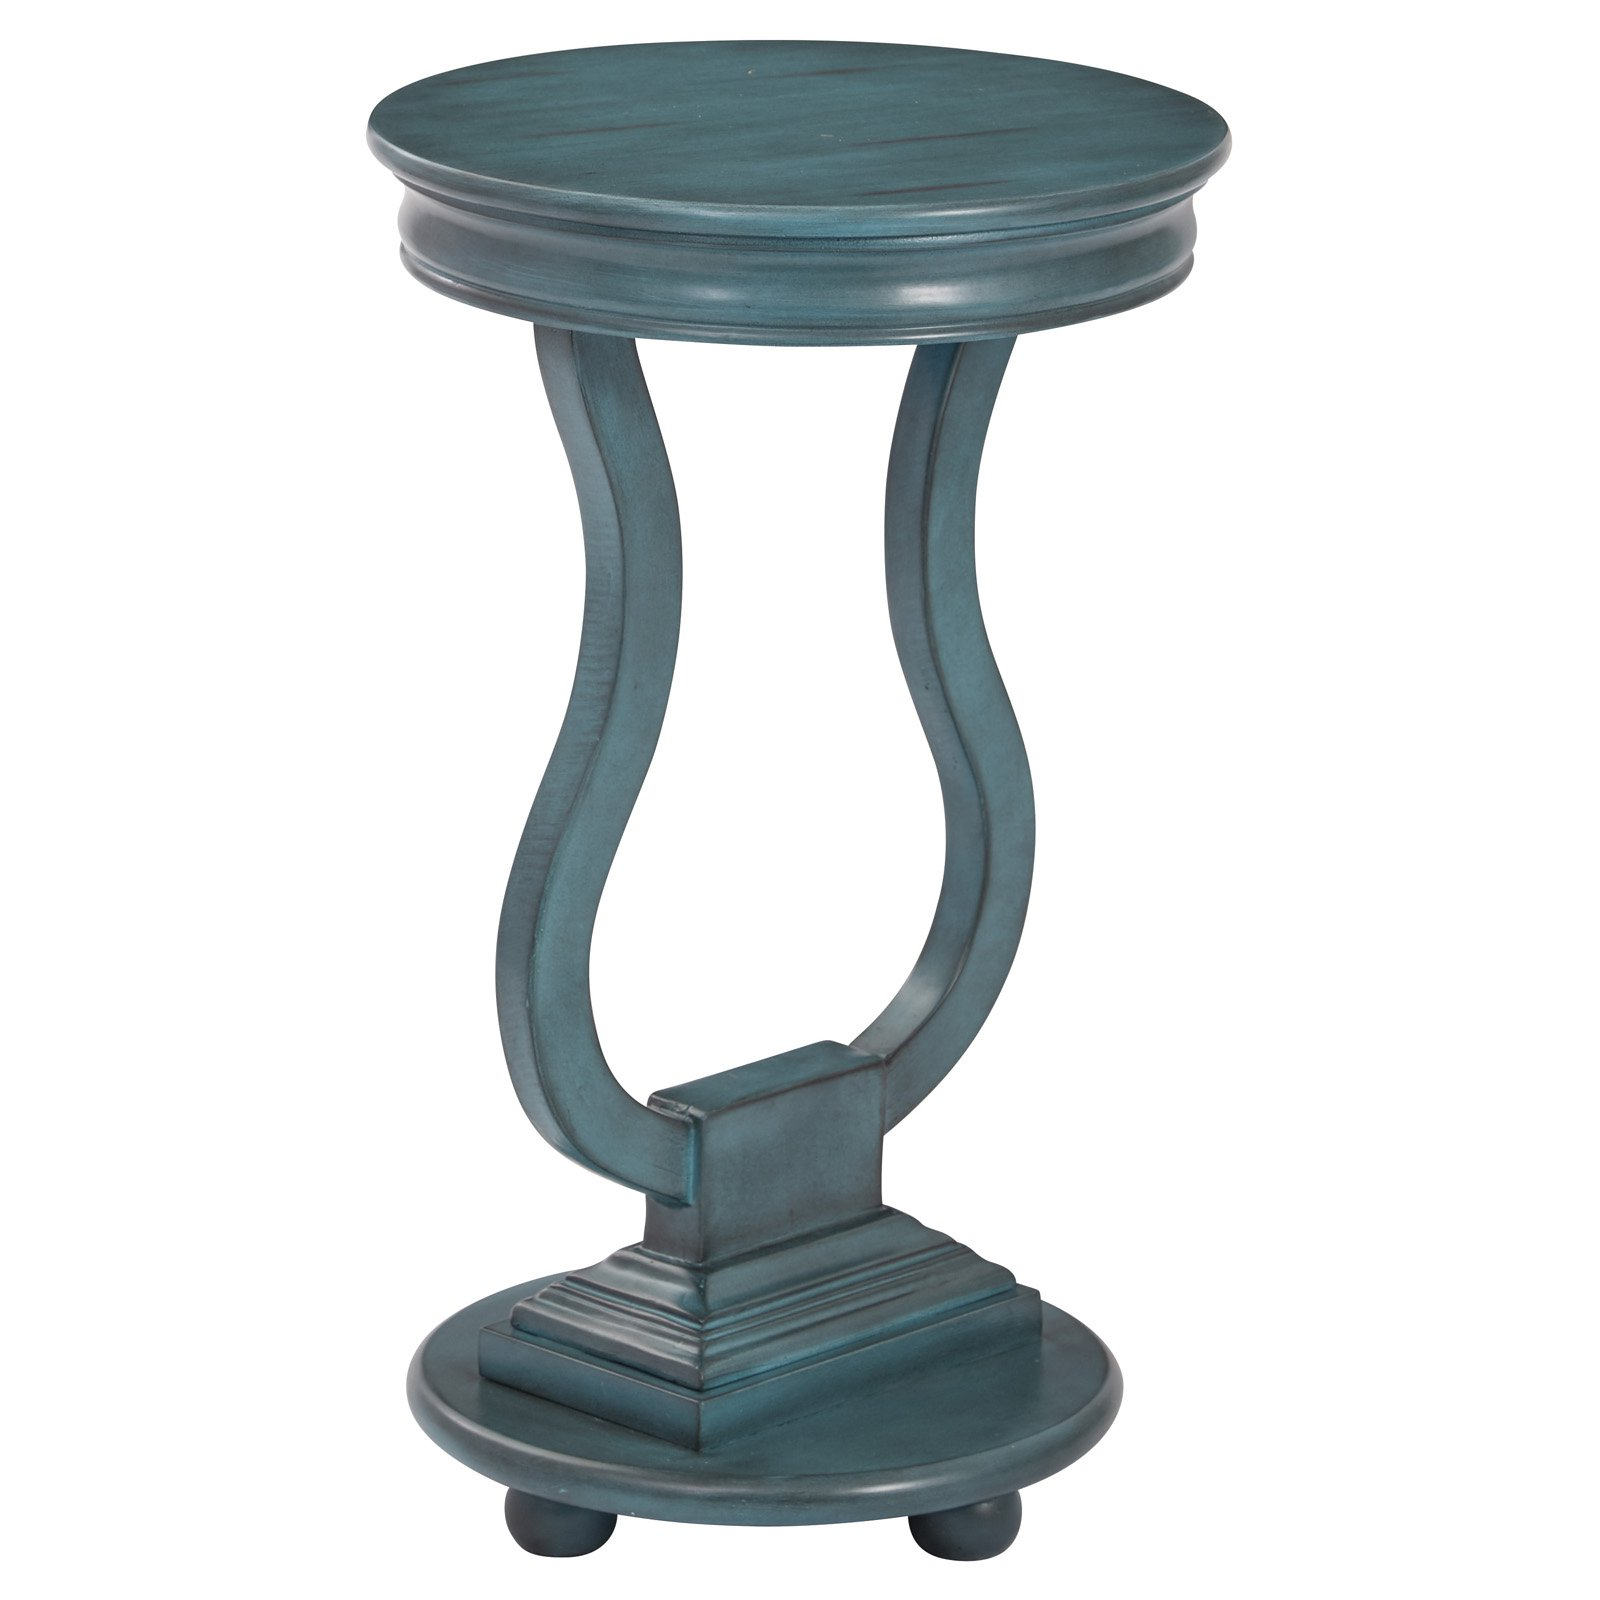 Osp Designs Chase Round Accent Table Wood Accent Table Osp Home Furnishings